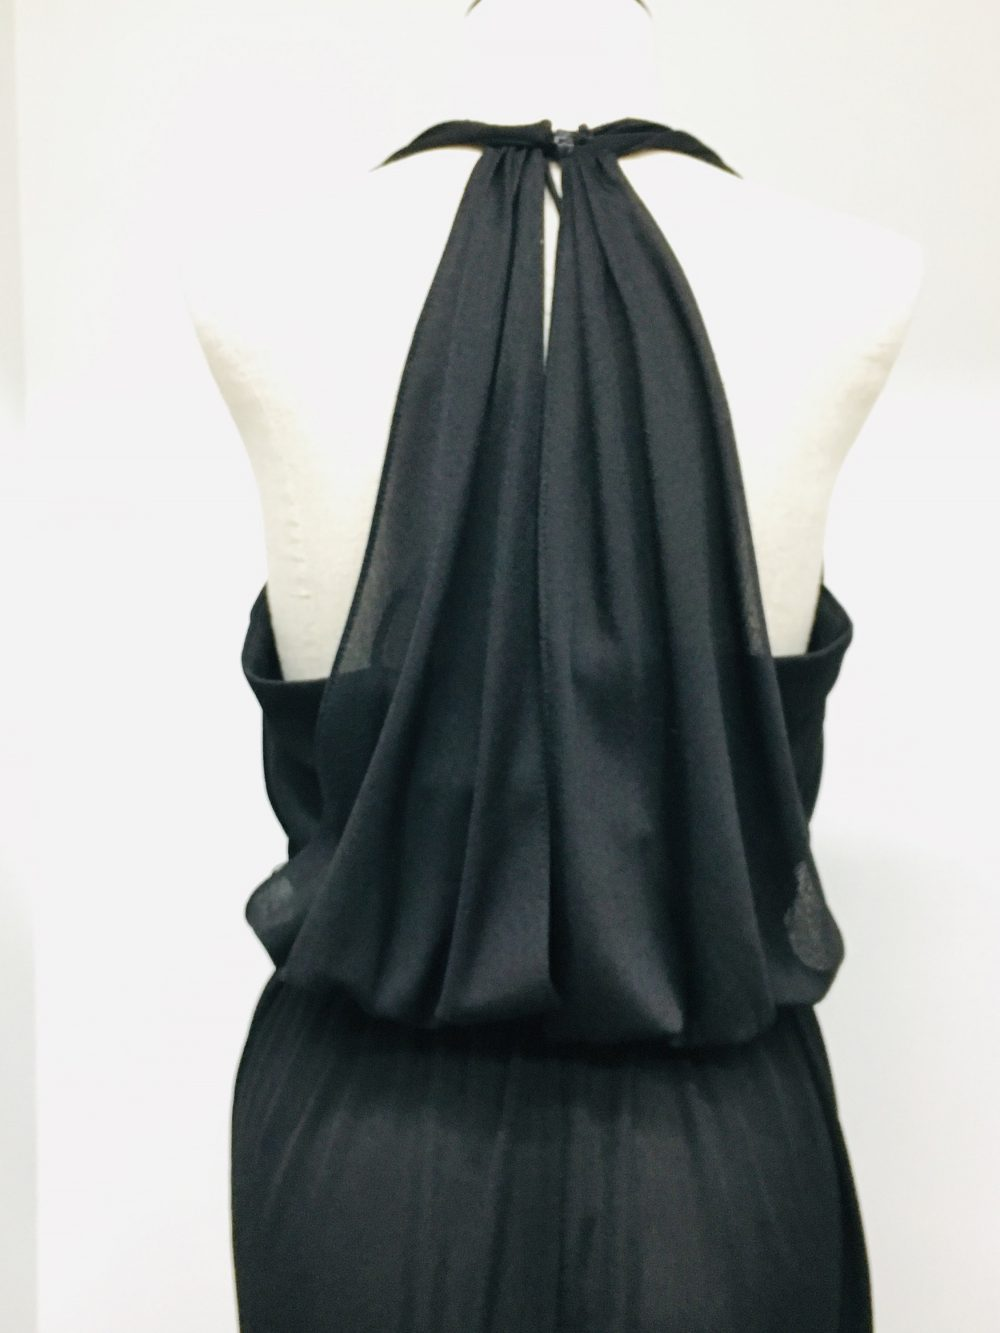 David Morris Vintage Halter Black Crepe Dress Exquisite & Perfect Little See Picture Of Measurements For Sizing